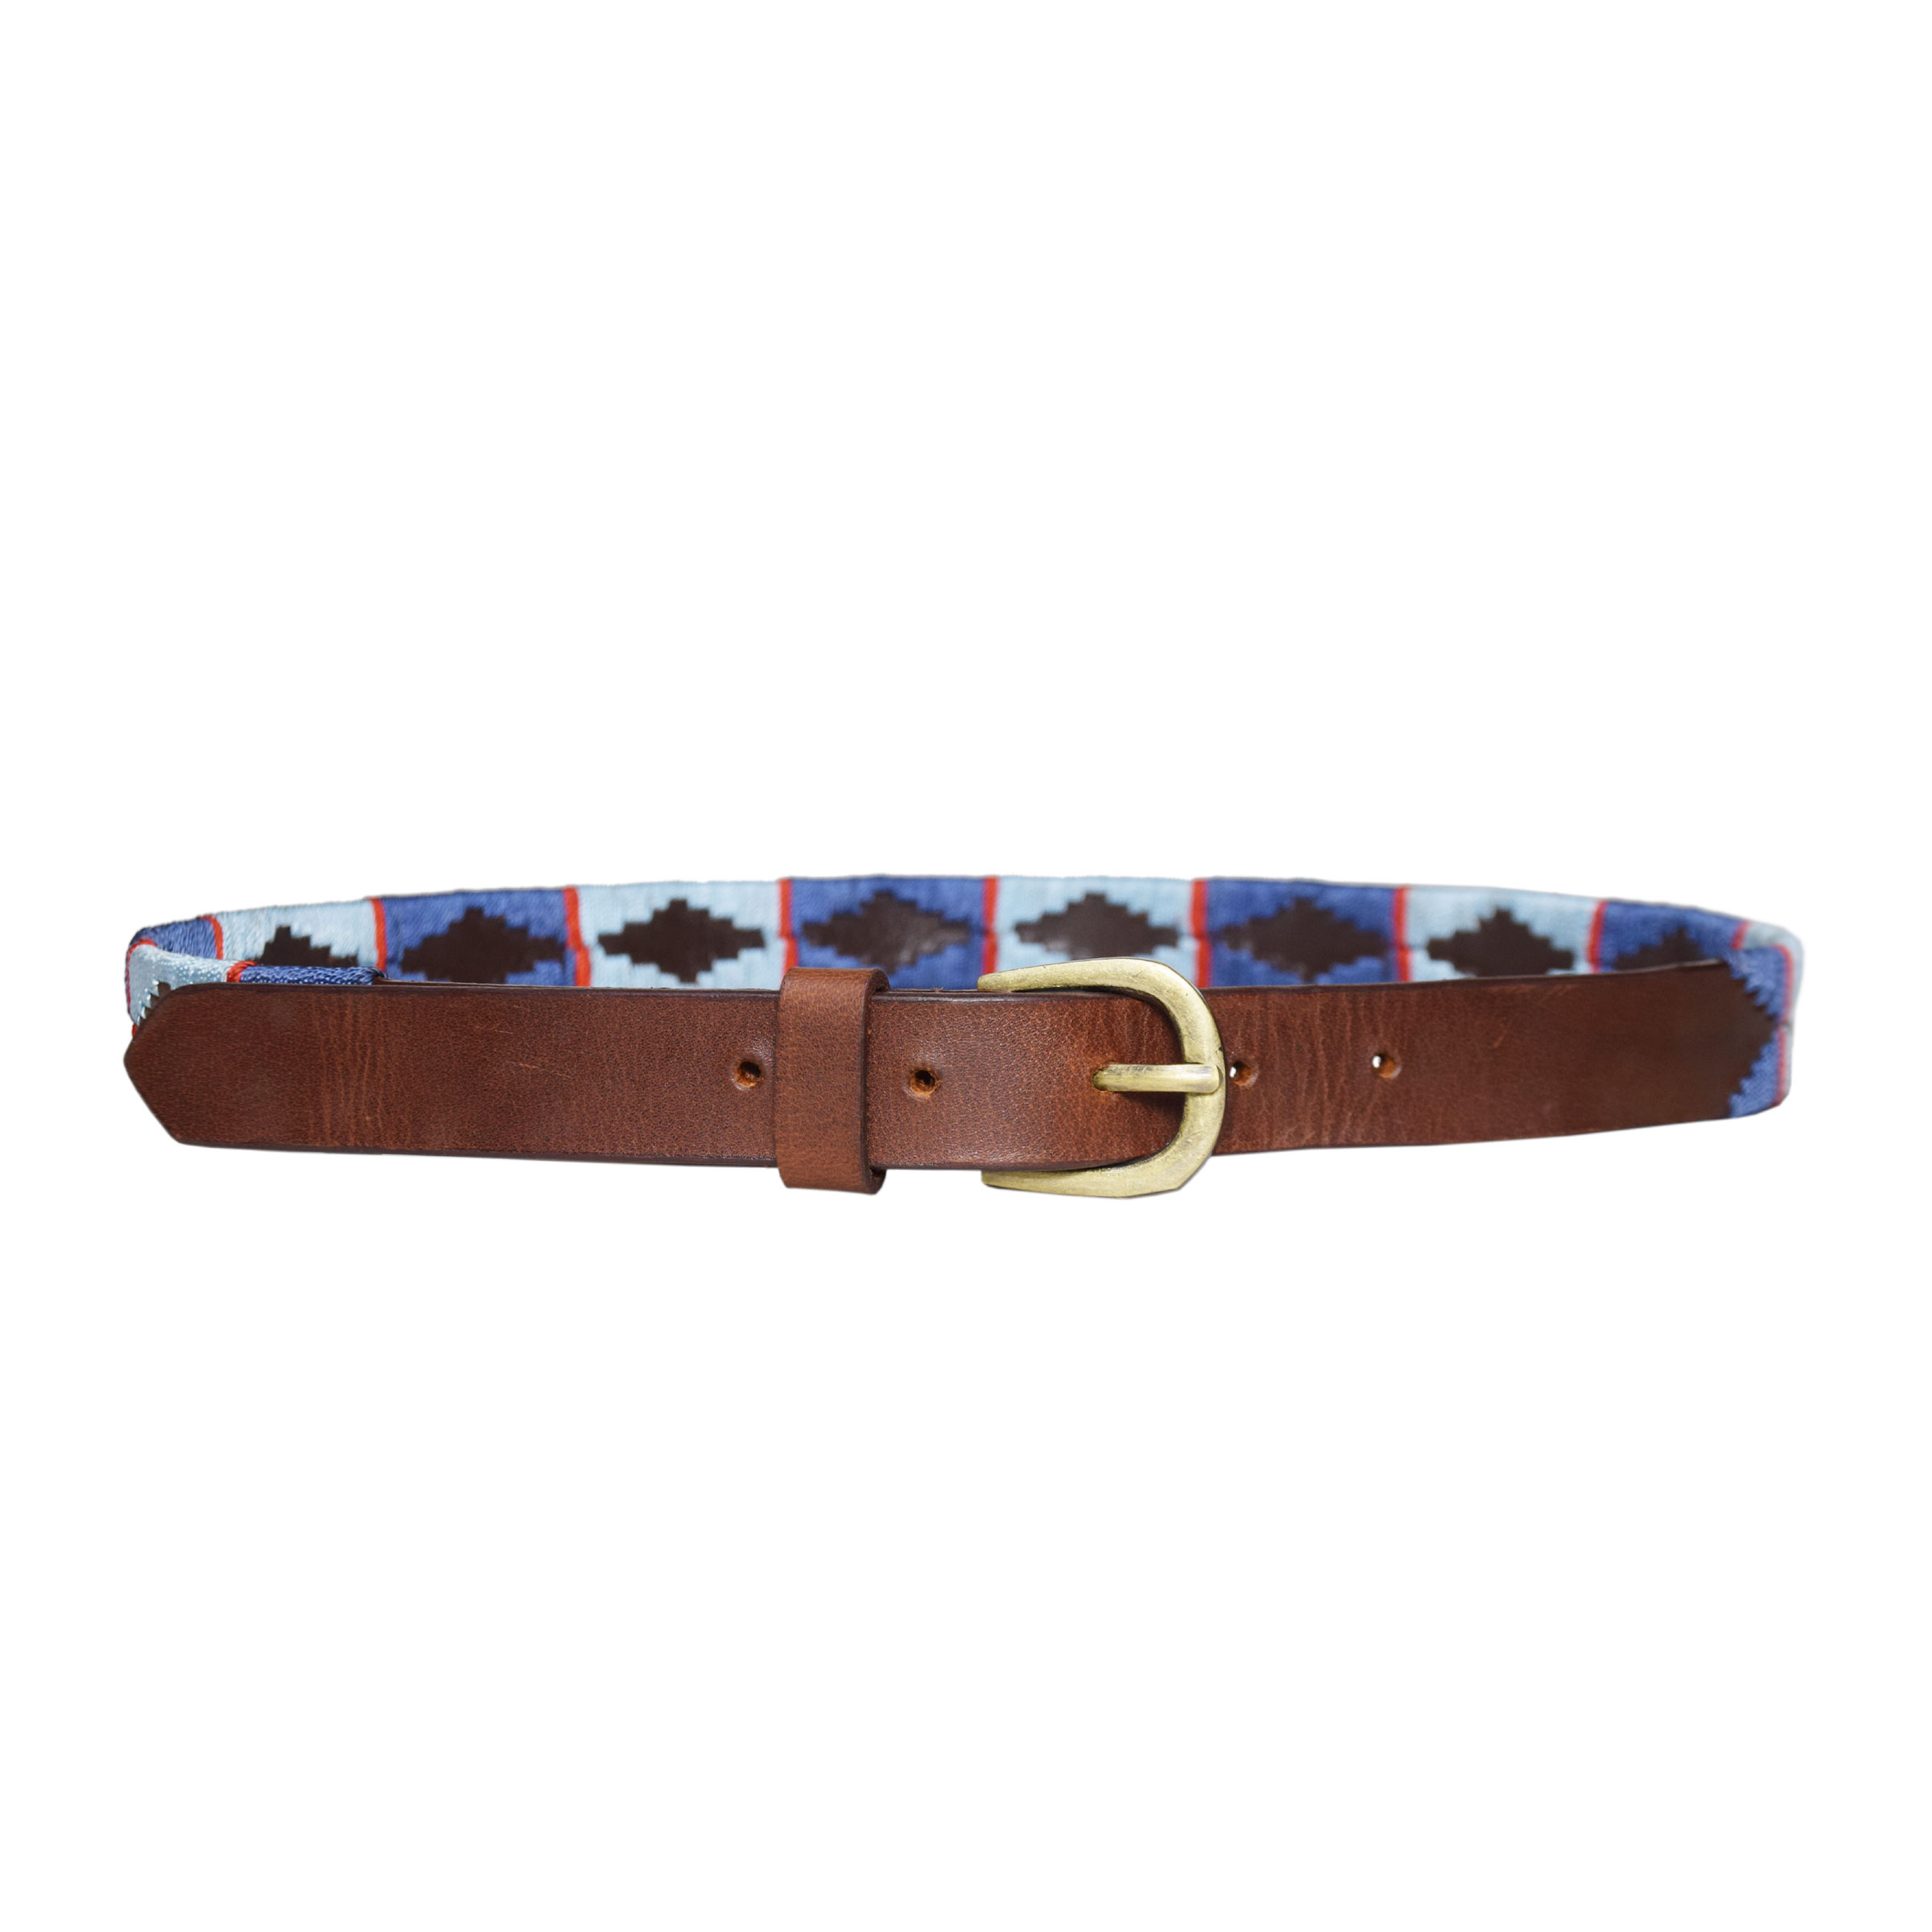 BROWN POLO BELT WITH MULTICOLOR DESIGN 1 INCH